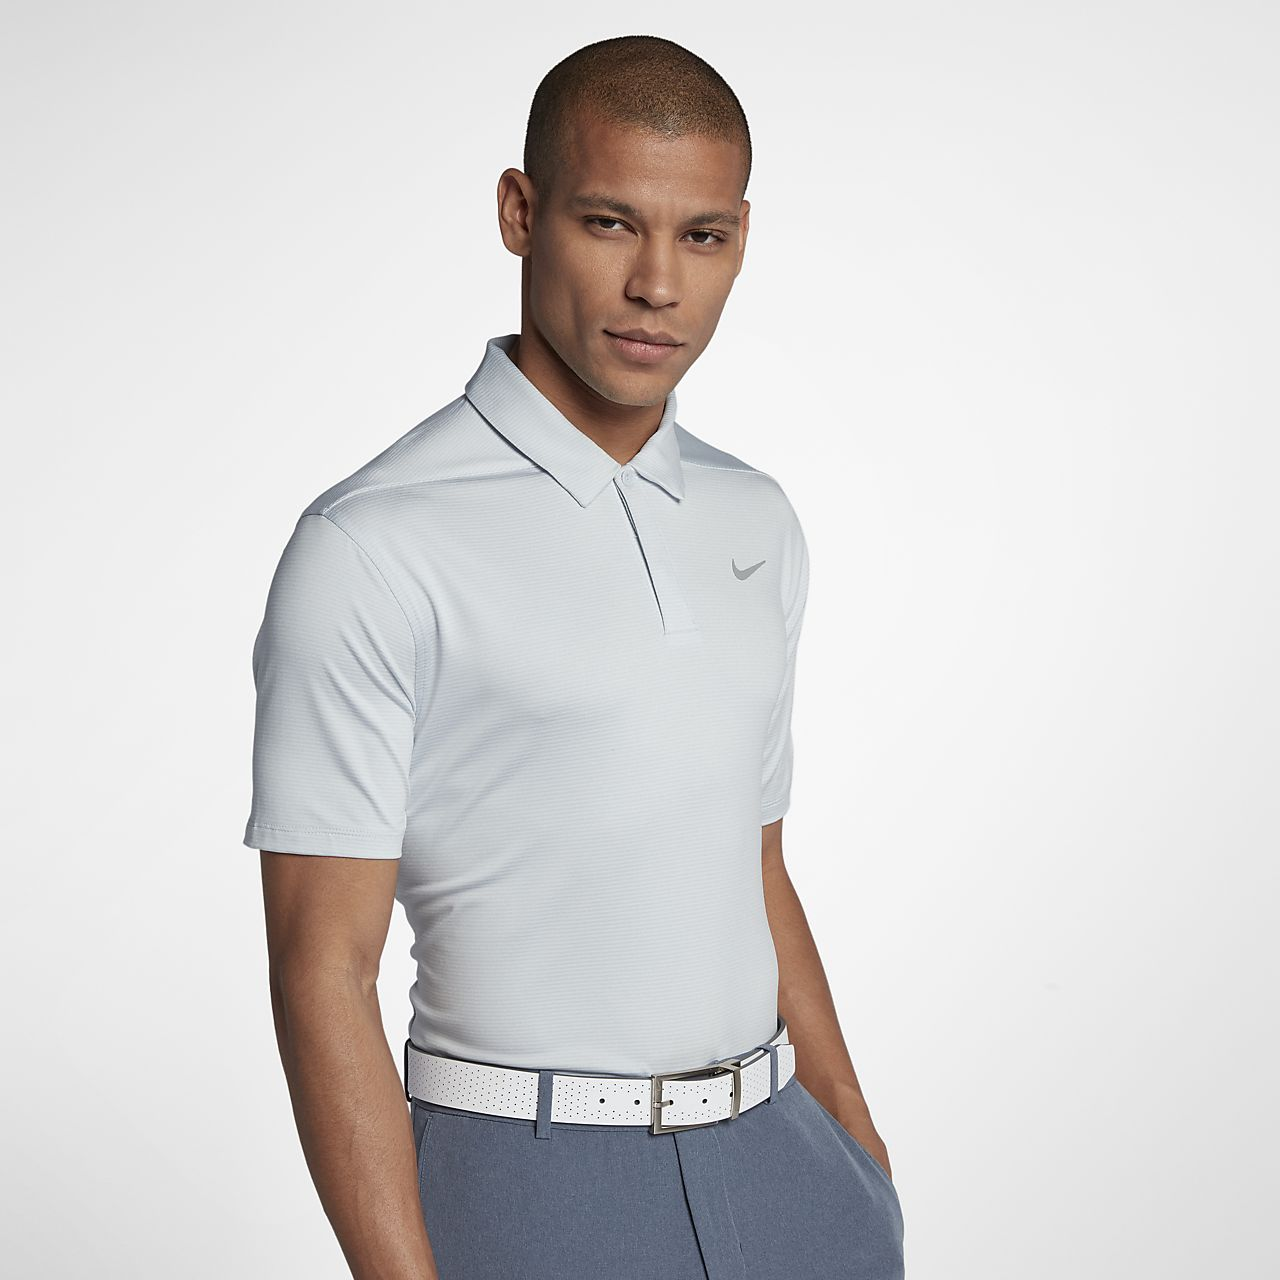 ... Nike Dri-FIT Men's Standard Fit Golf Polo